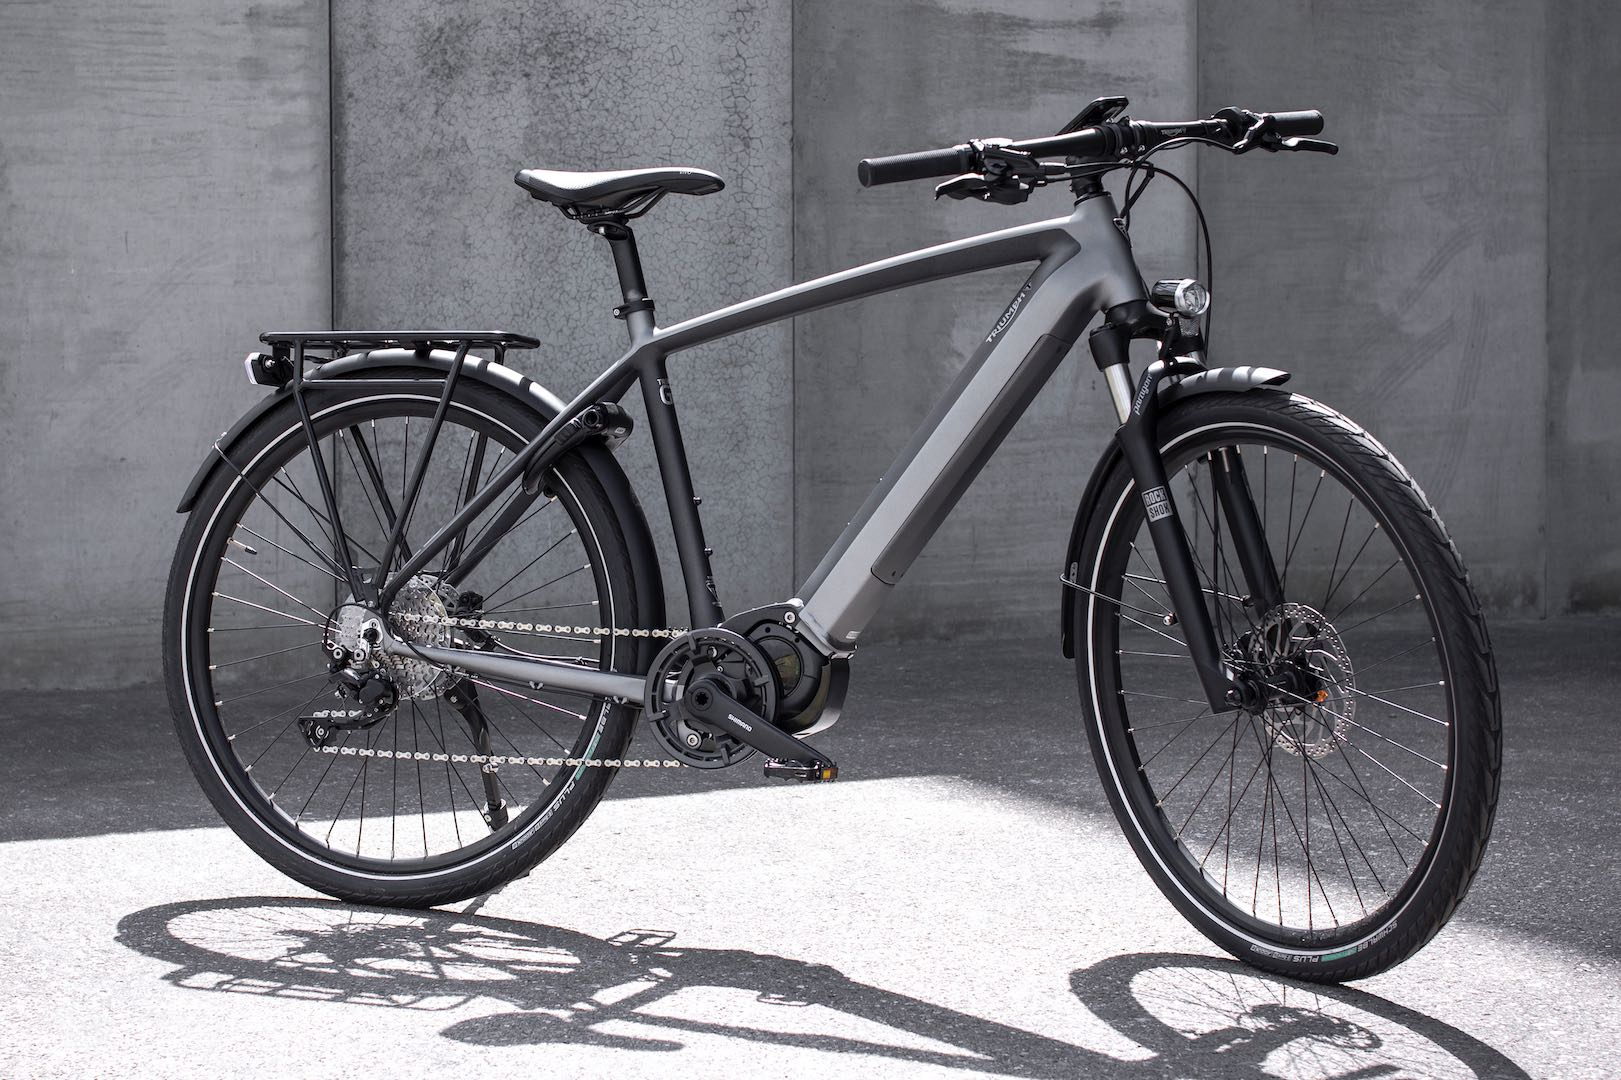 2020 Triumph Trekker GT E-Bicycle Unveiled: Specs & Price